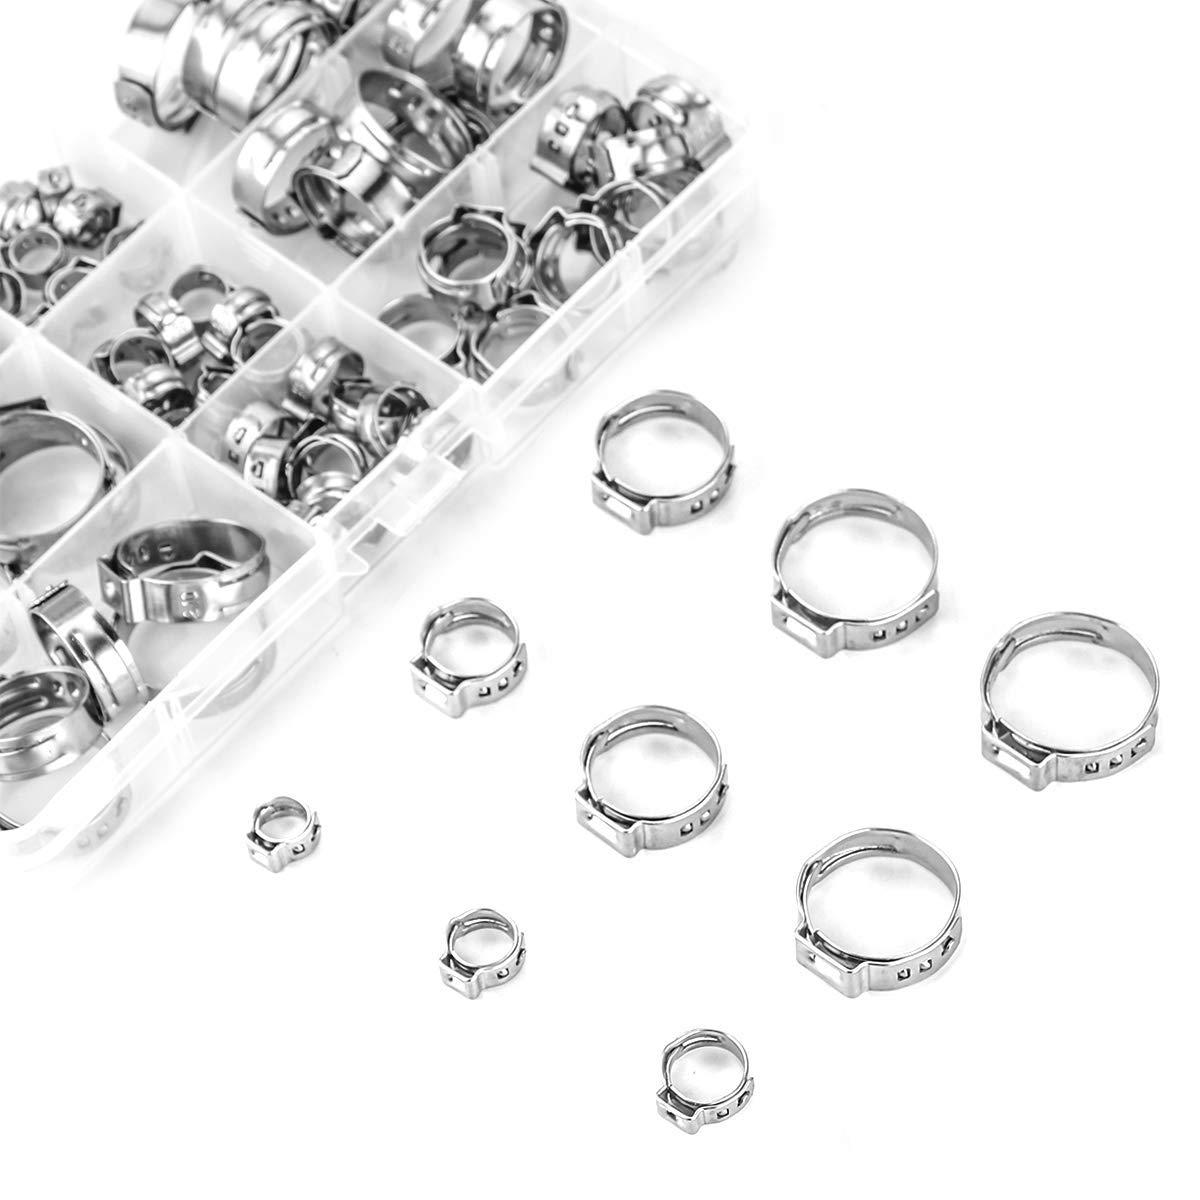 Stainless Steel Single Ear Hose Clamp, 80Pcs 6-23 6mm Crimp Hose Clamp  Assortment Kit Ear Stepless Cinch Rings Crimp Pinch Fitting Tools (1/4 Inch  -